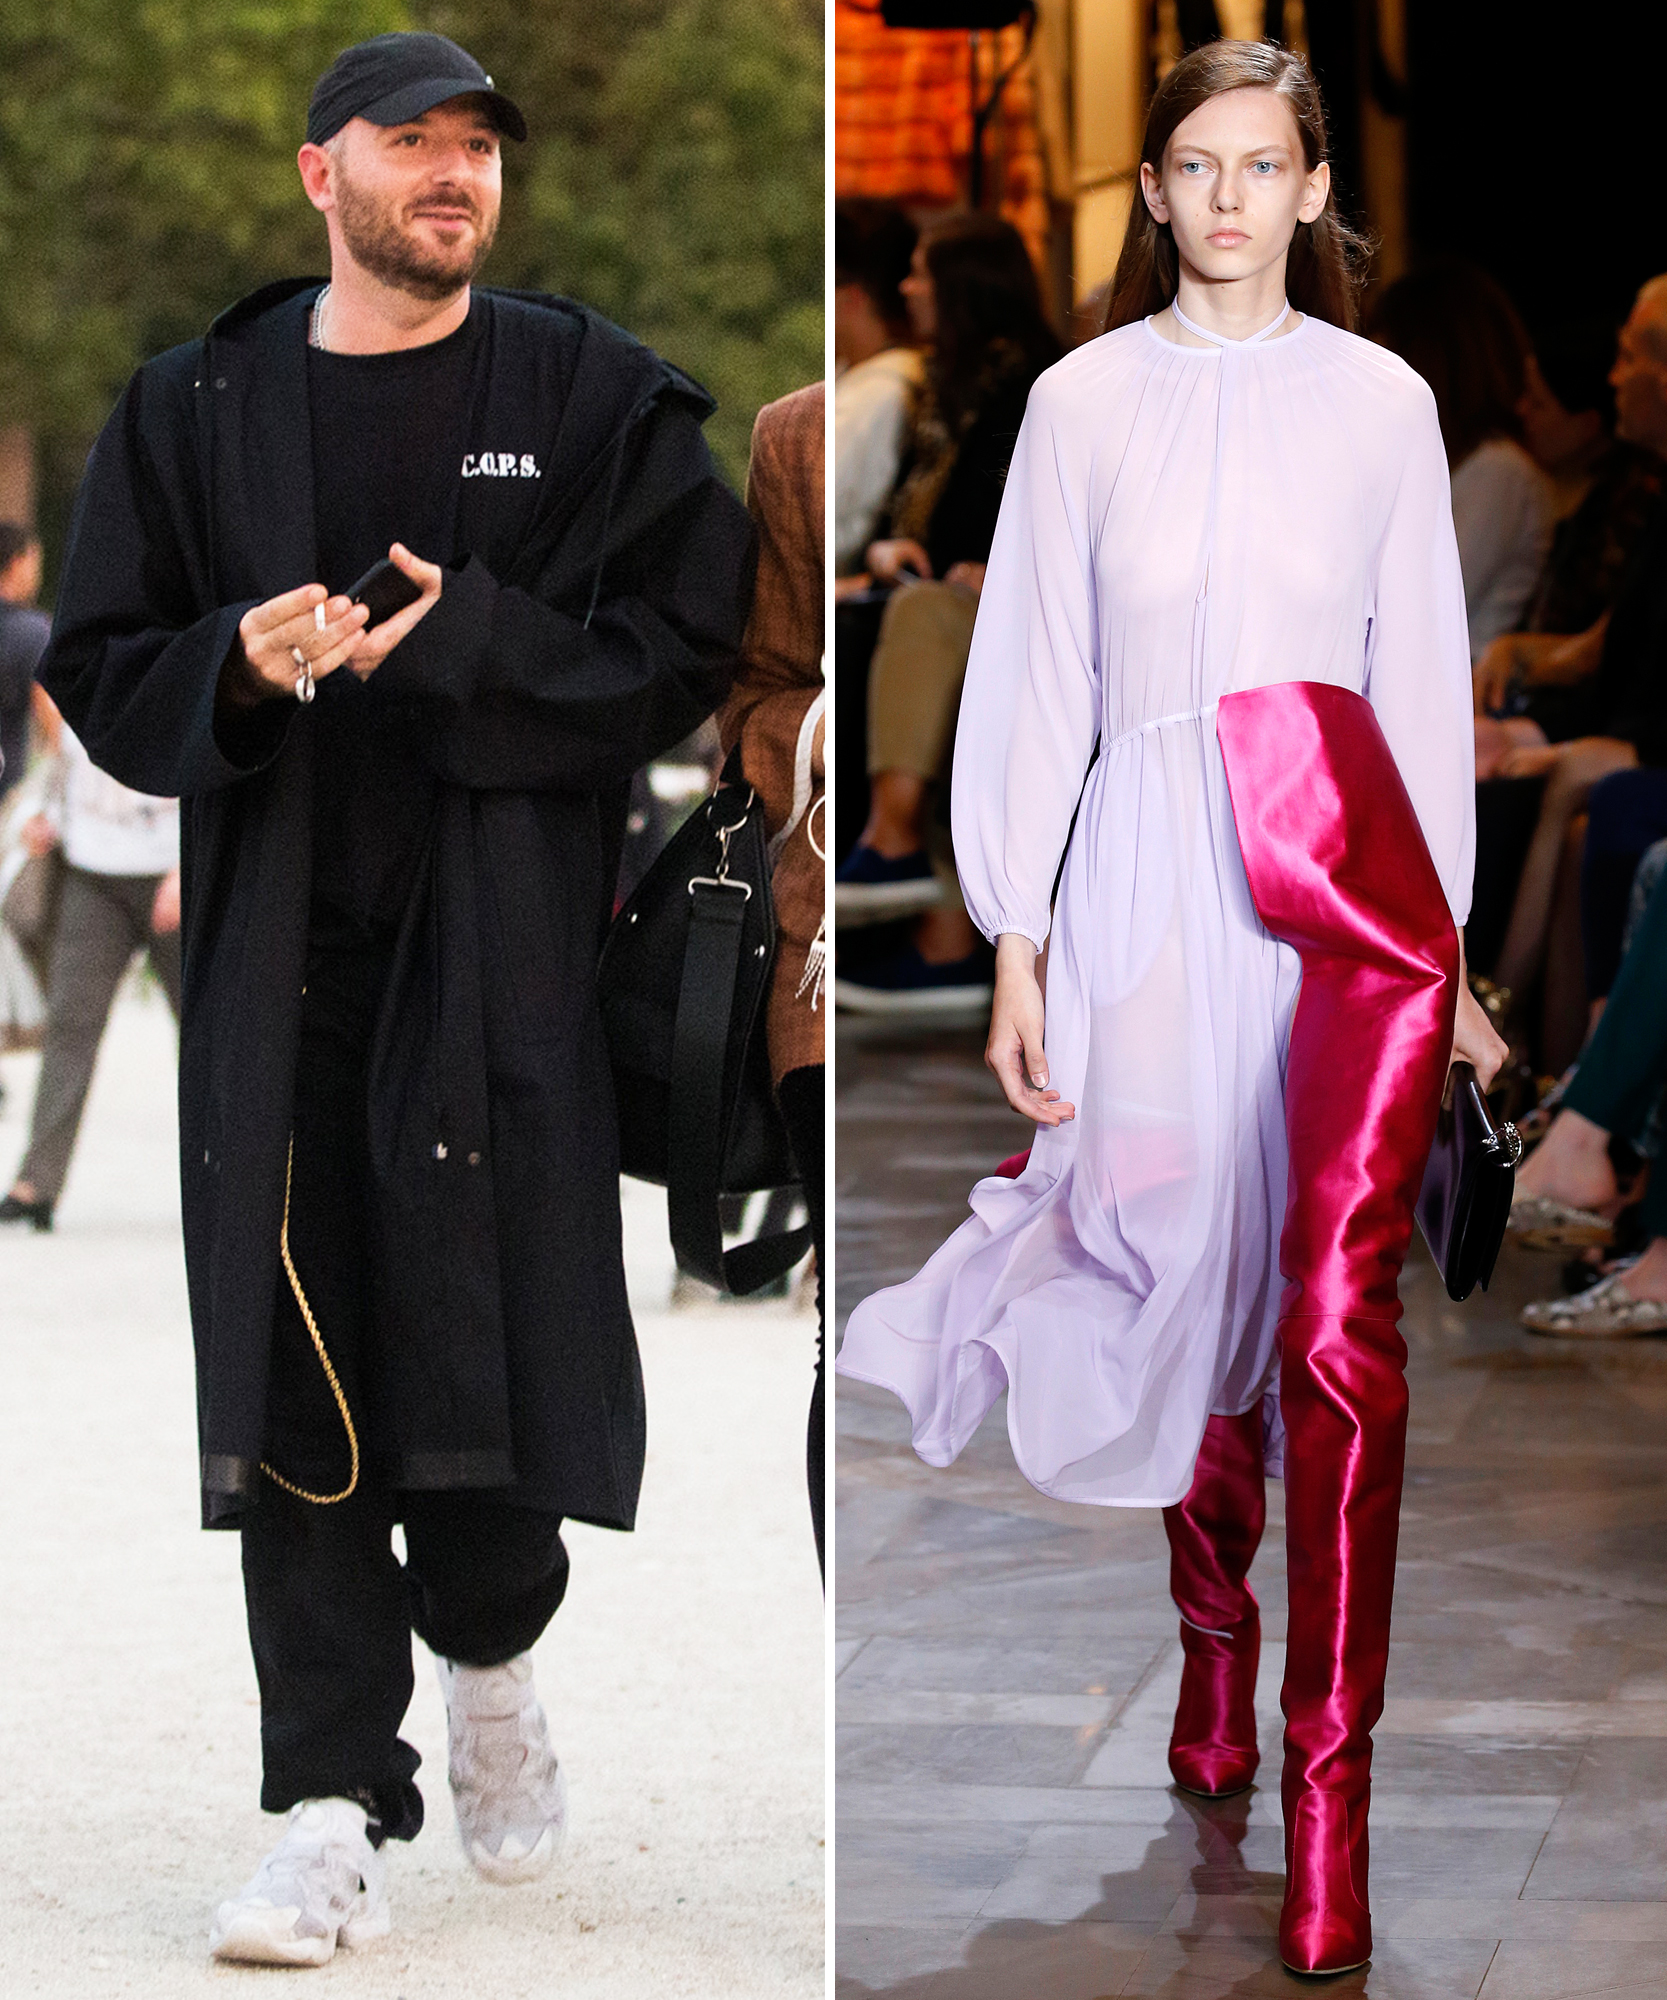 Demna Gvasalia, Balenciaga and Vetements